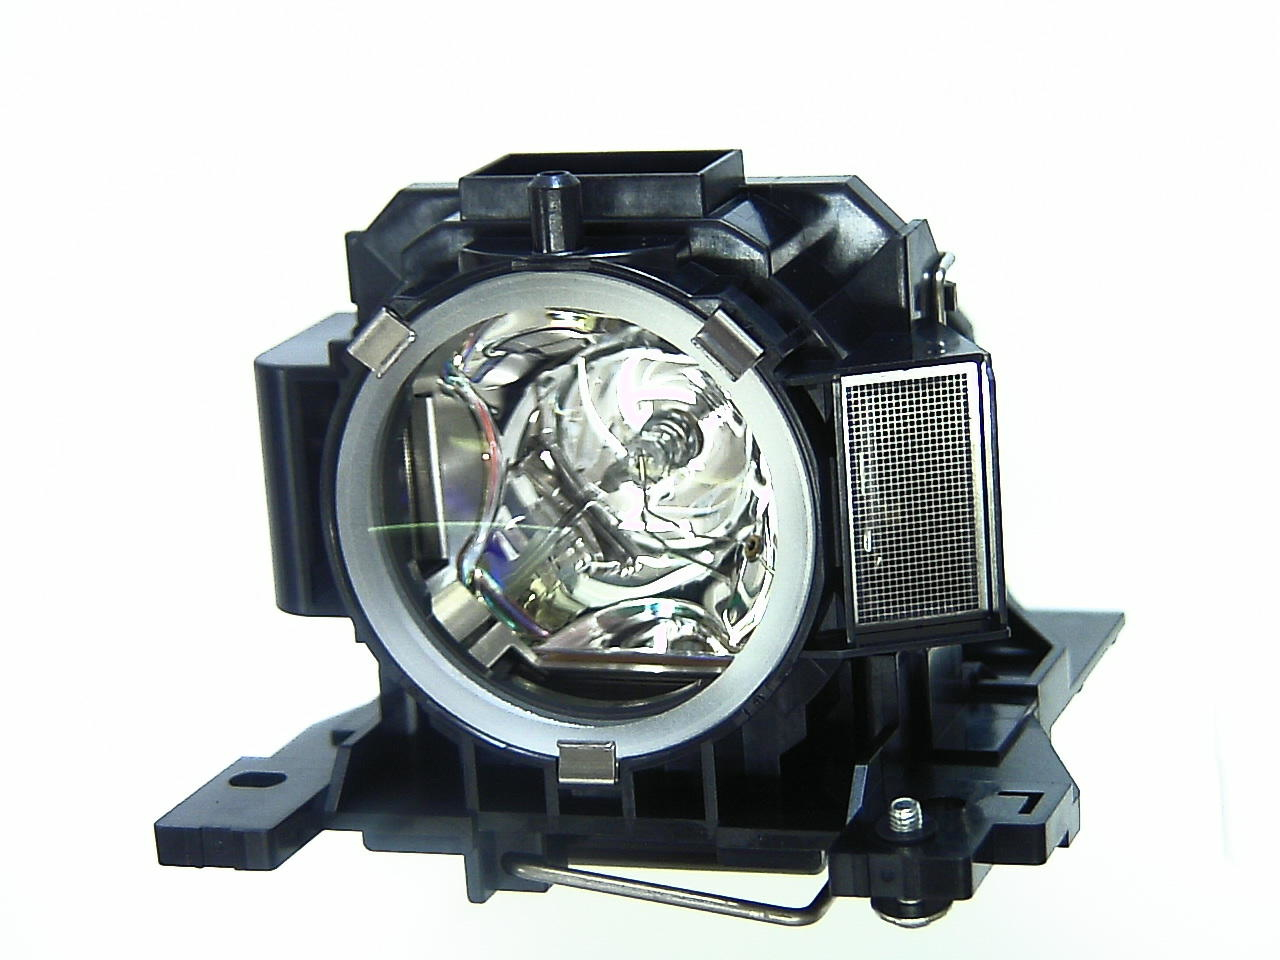 V7 VPL1789-1E PROJECTOR LAMP FOR SELECTED PROJECTORS BY HITACHI, DUKANE